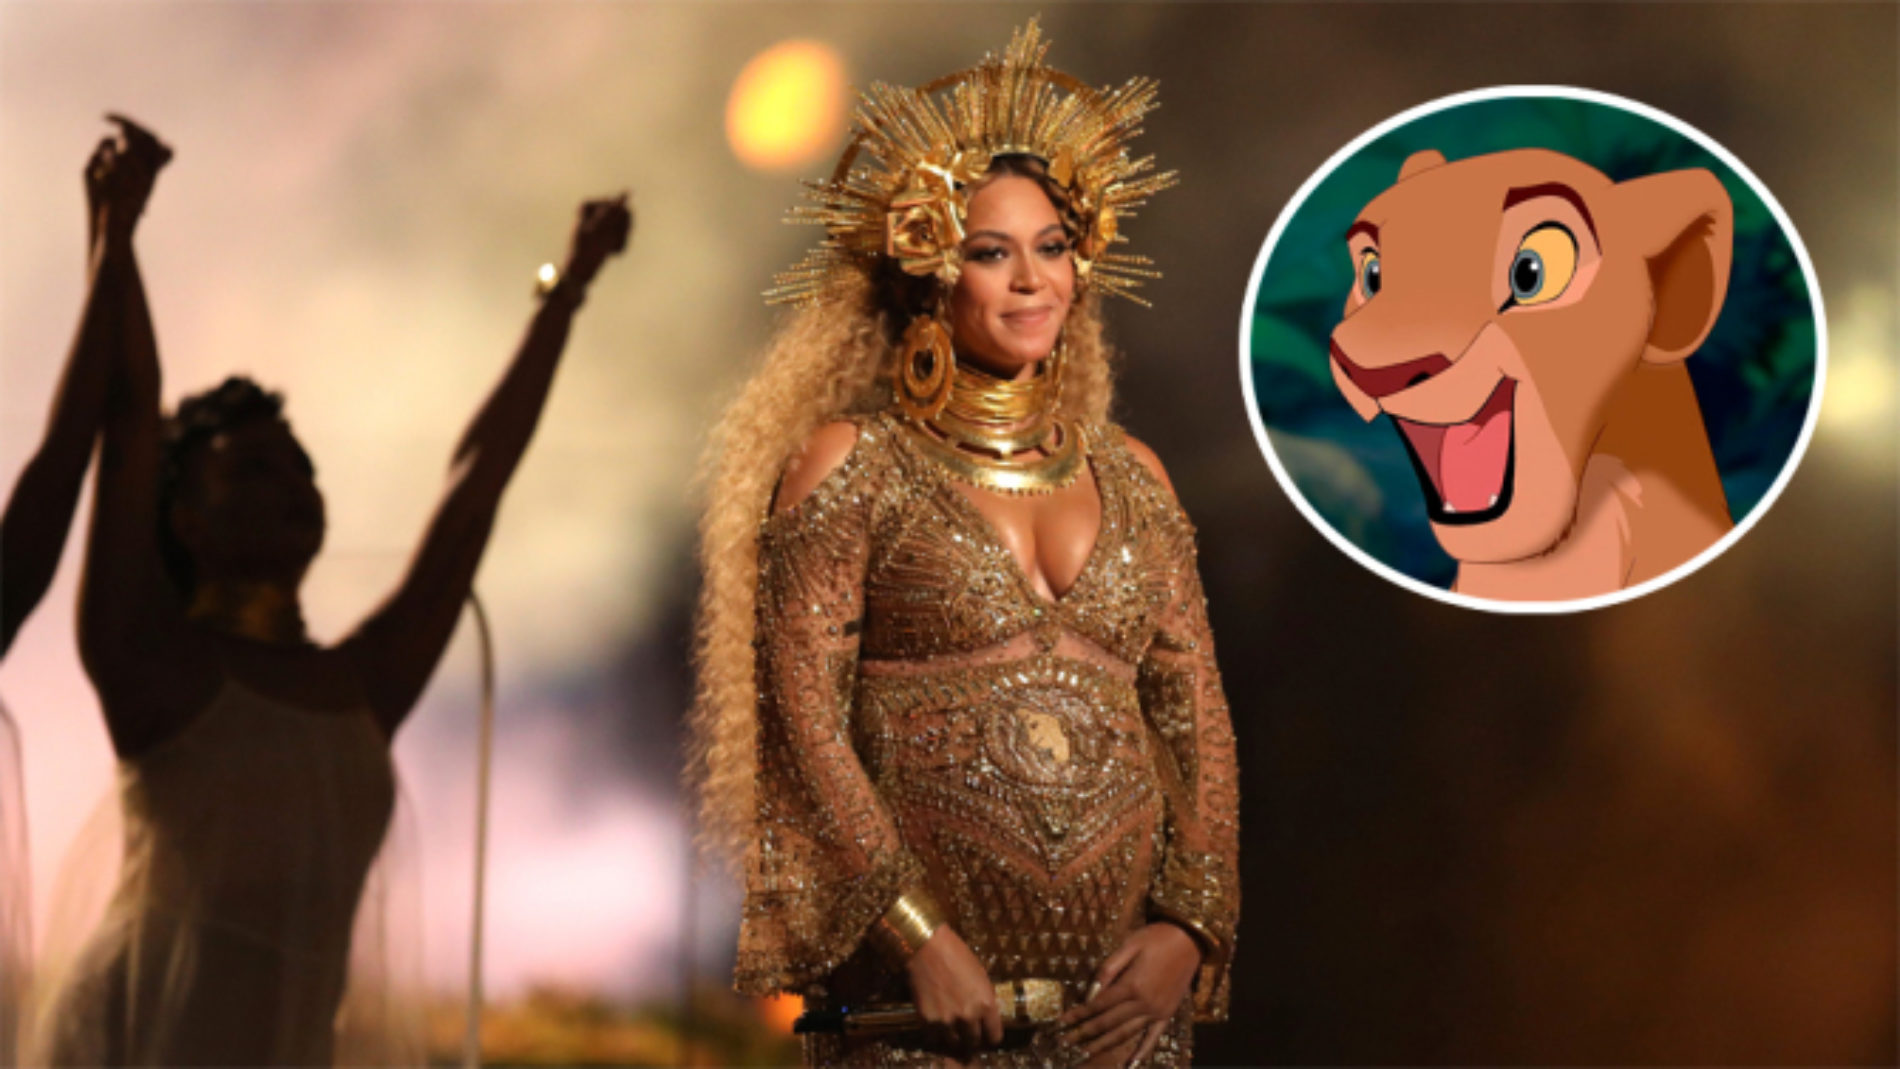 Beyoncé considered for a key role in Disney's Lion King remake